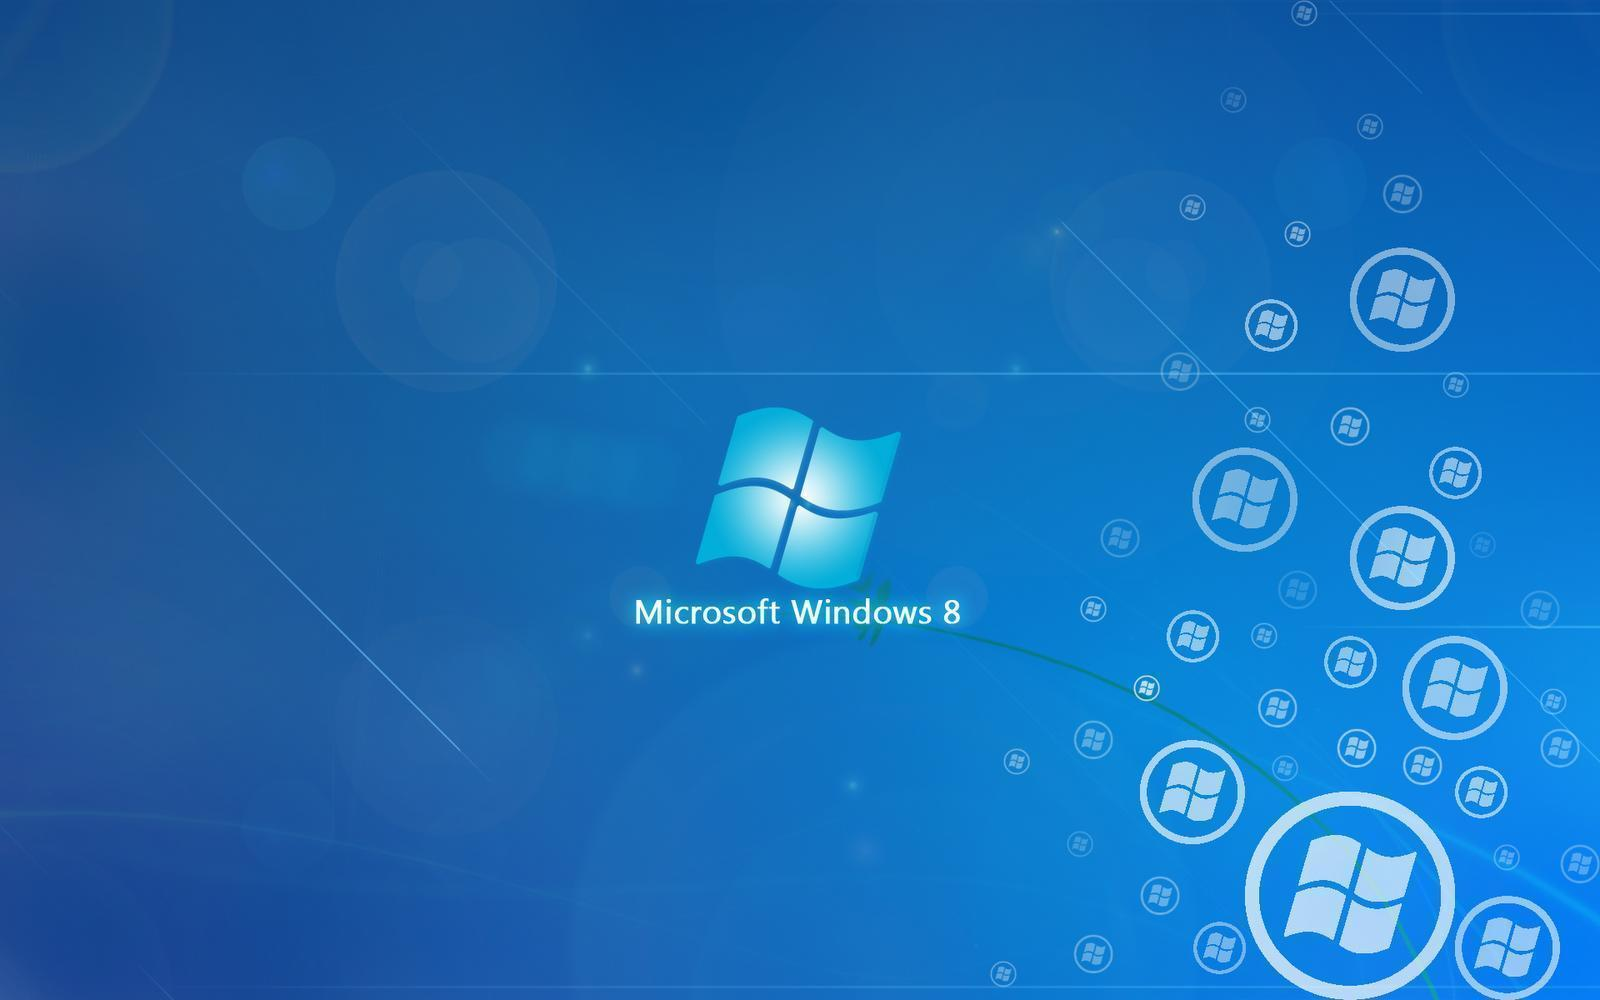 Wallpapers HD: Windows 8